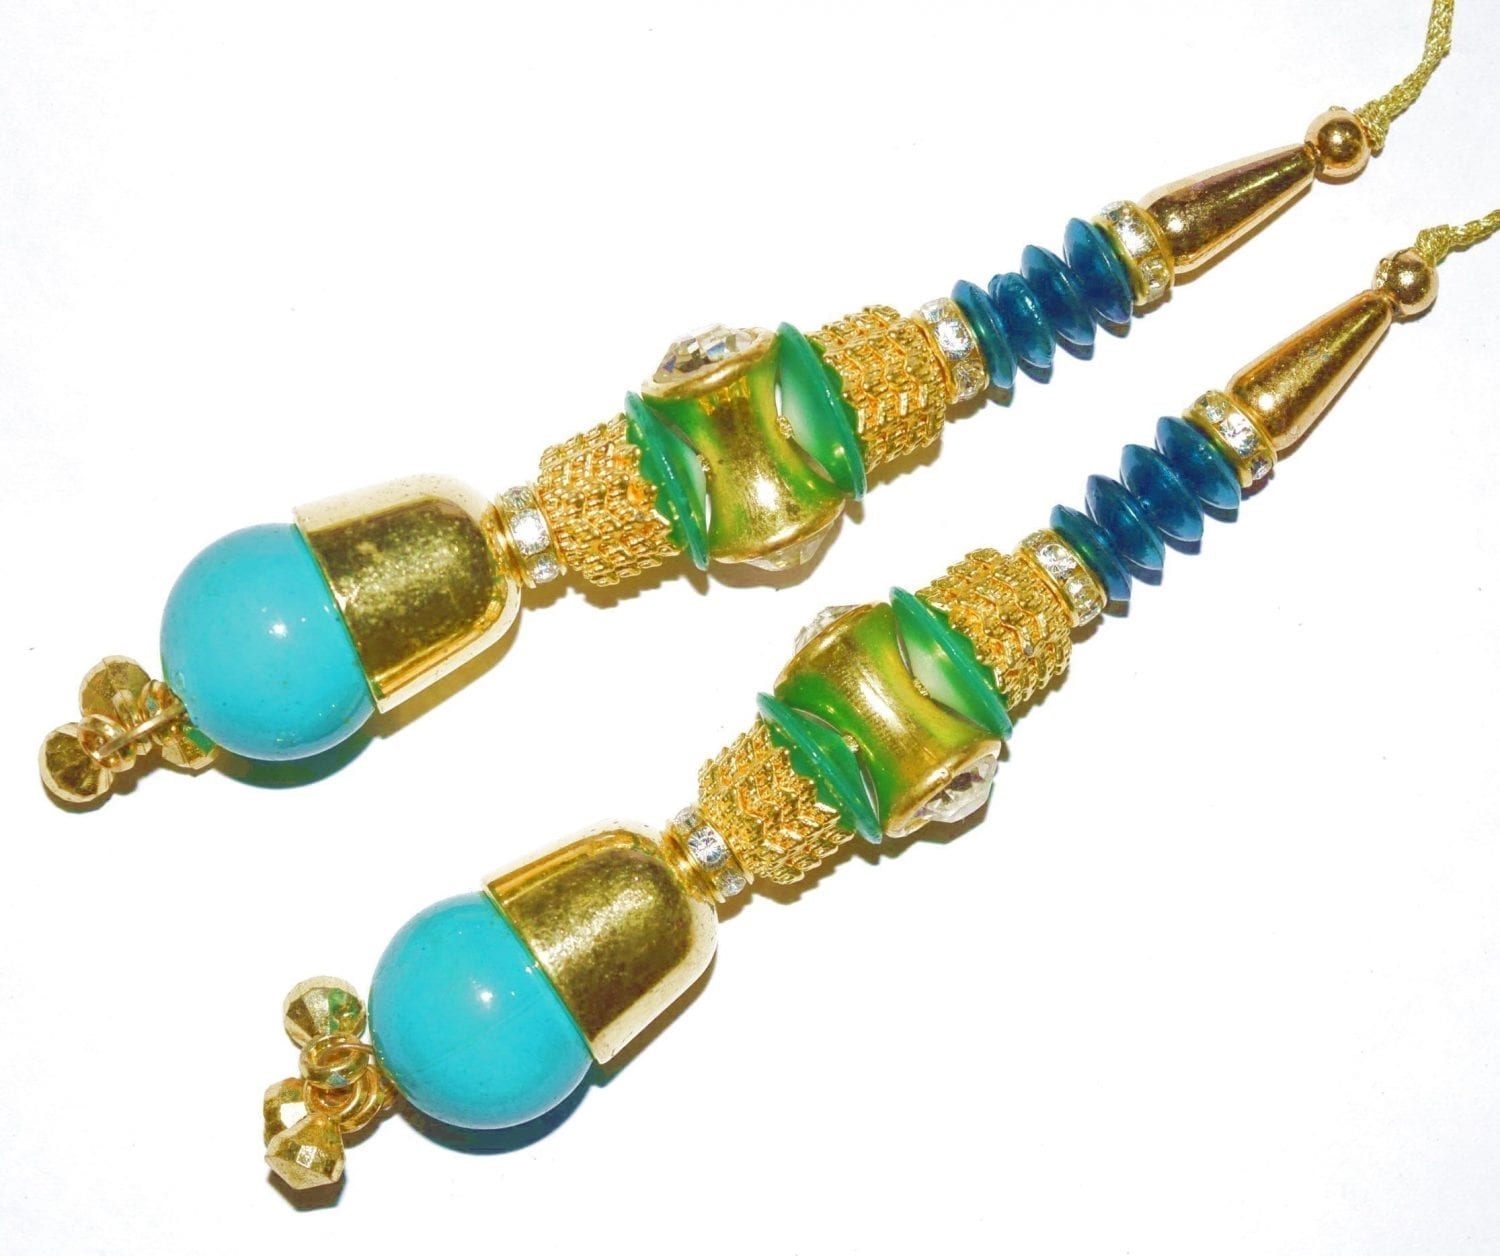 4.5 Inch long Latkans Dangles pair Multipurpose use for blouse, saree , dupatta, kurti, curtains LK058 1